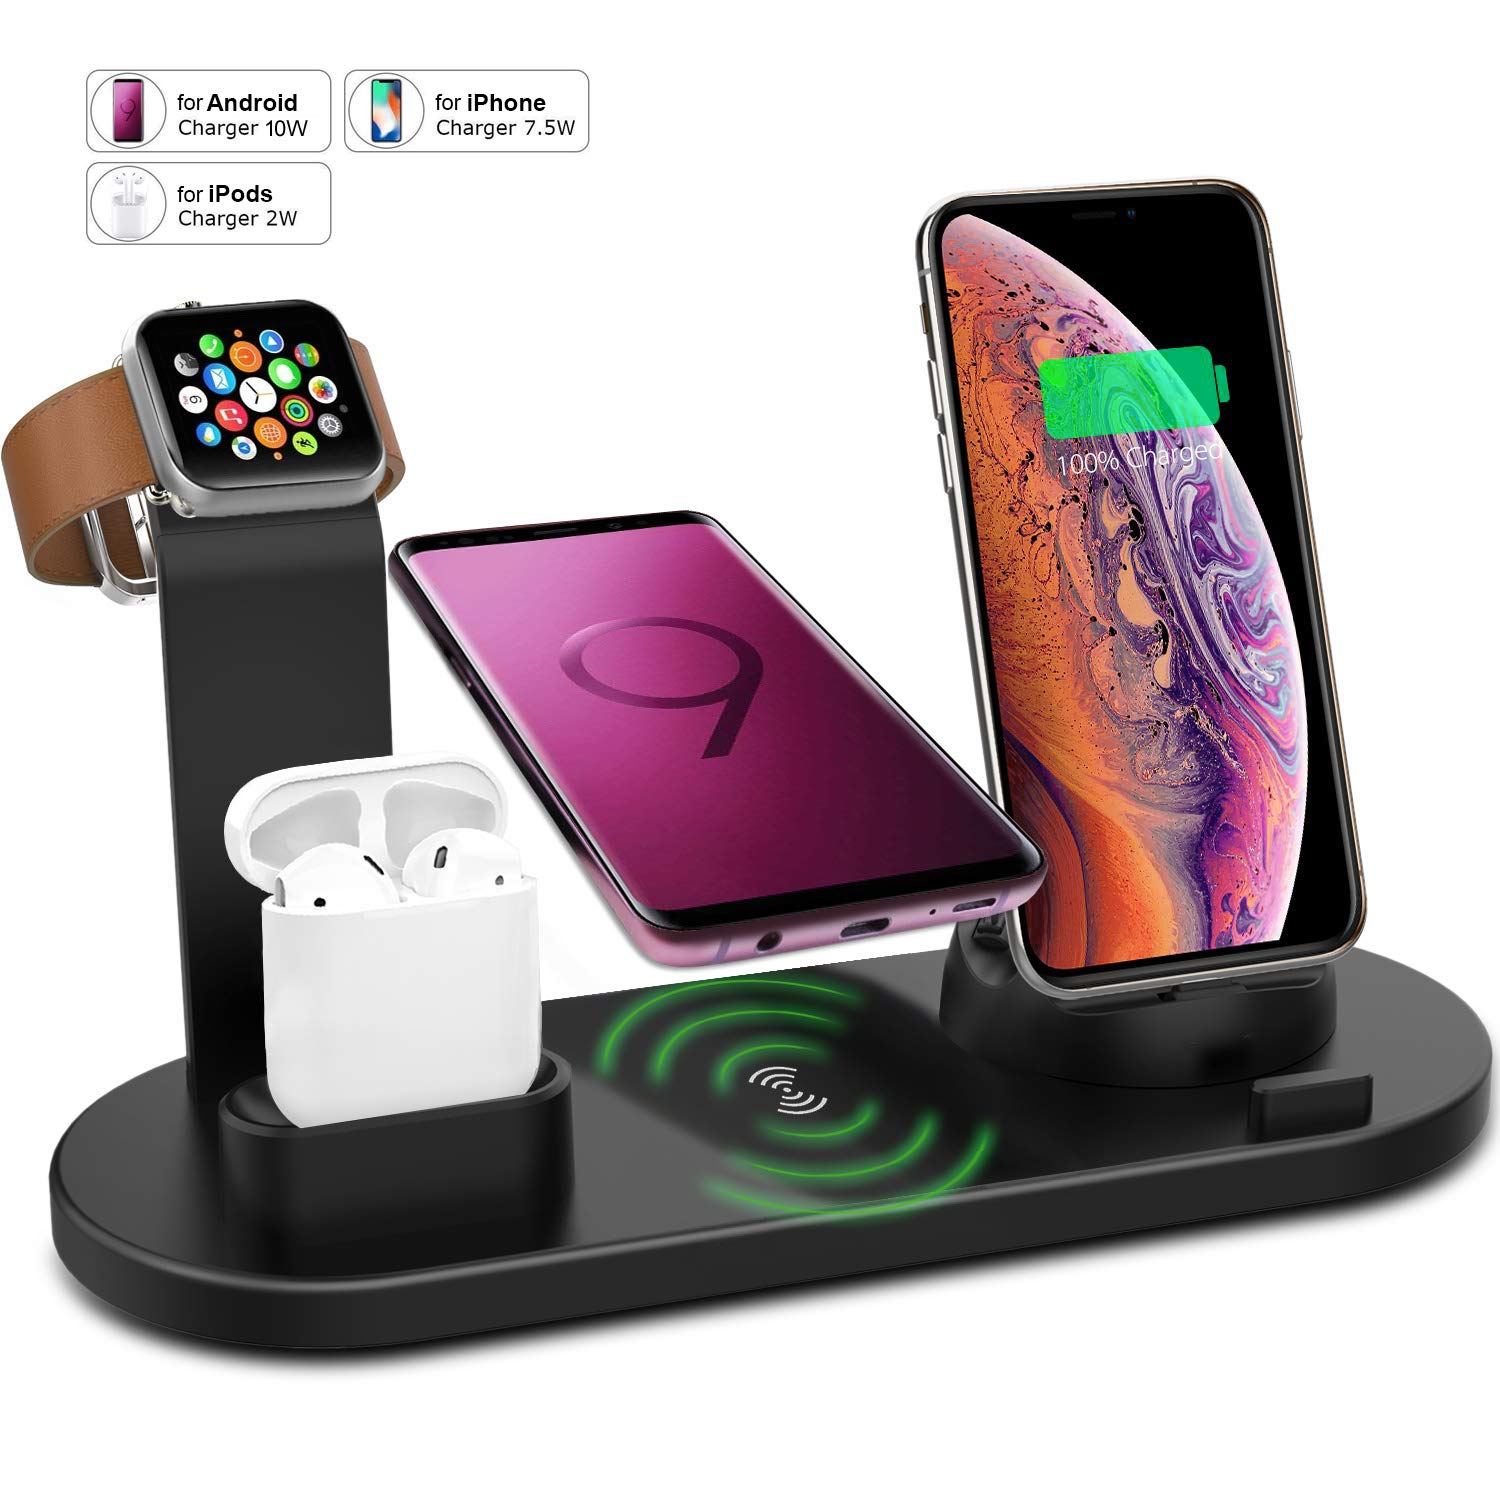 Wireless Charger Stand for iPhone Apple Watch Airpods, VRURC 3 in 1 Wireless Charging Dock Station Qi Fast Charging Pad for iPhone X/XS/XR/8/8 Plus for iWatch 4/3/2/1 S9 by ALLVCOVER